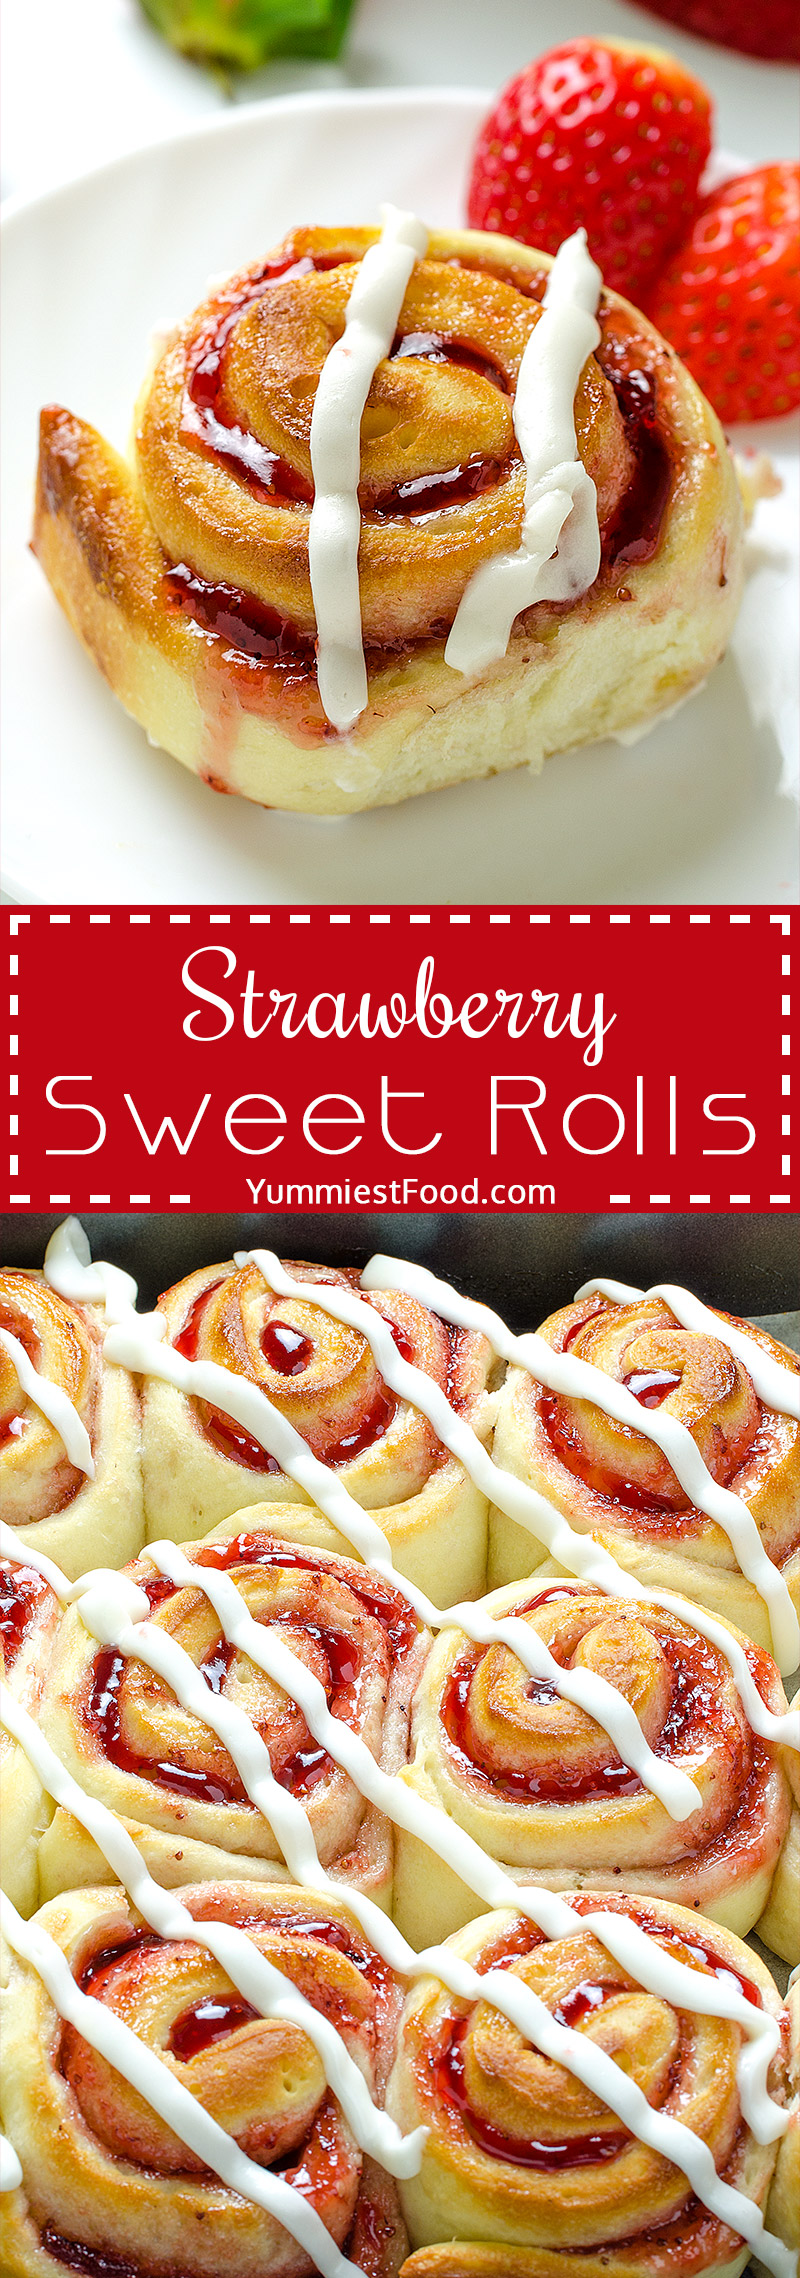 Strawberry Sweet Rolls with Vanilla Cream Cheese Glaze - moist, delicious and tasty